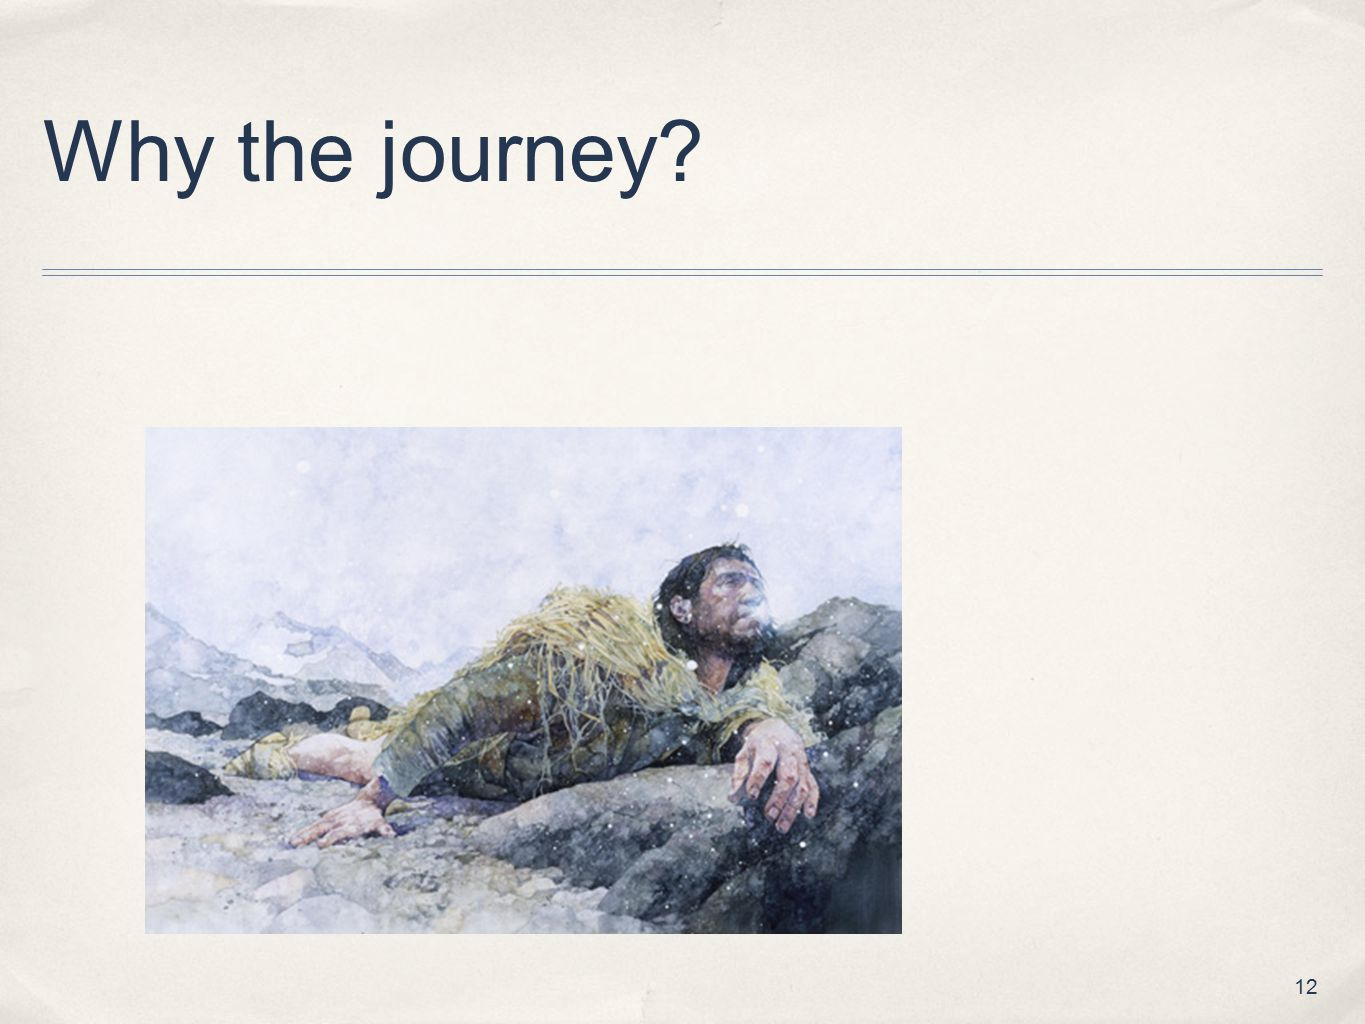 Why the journey